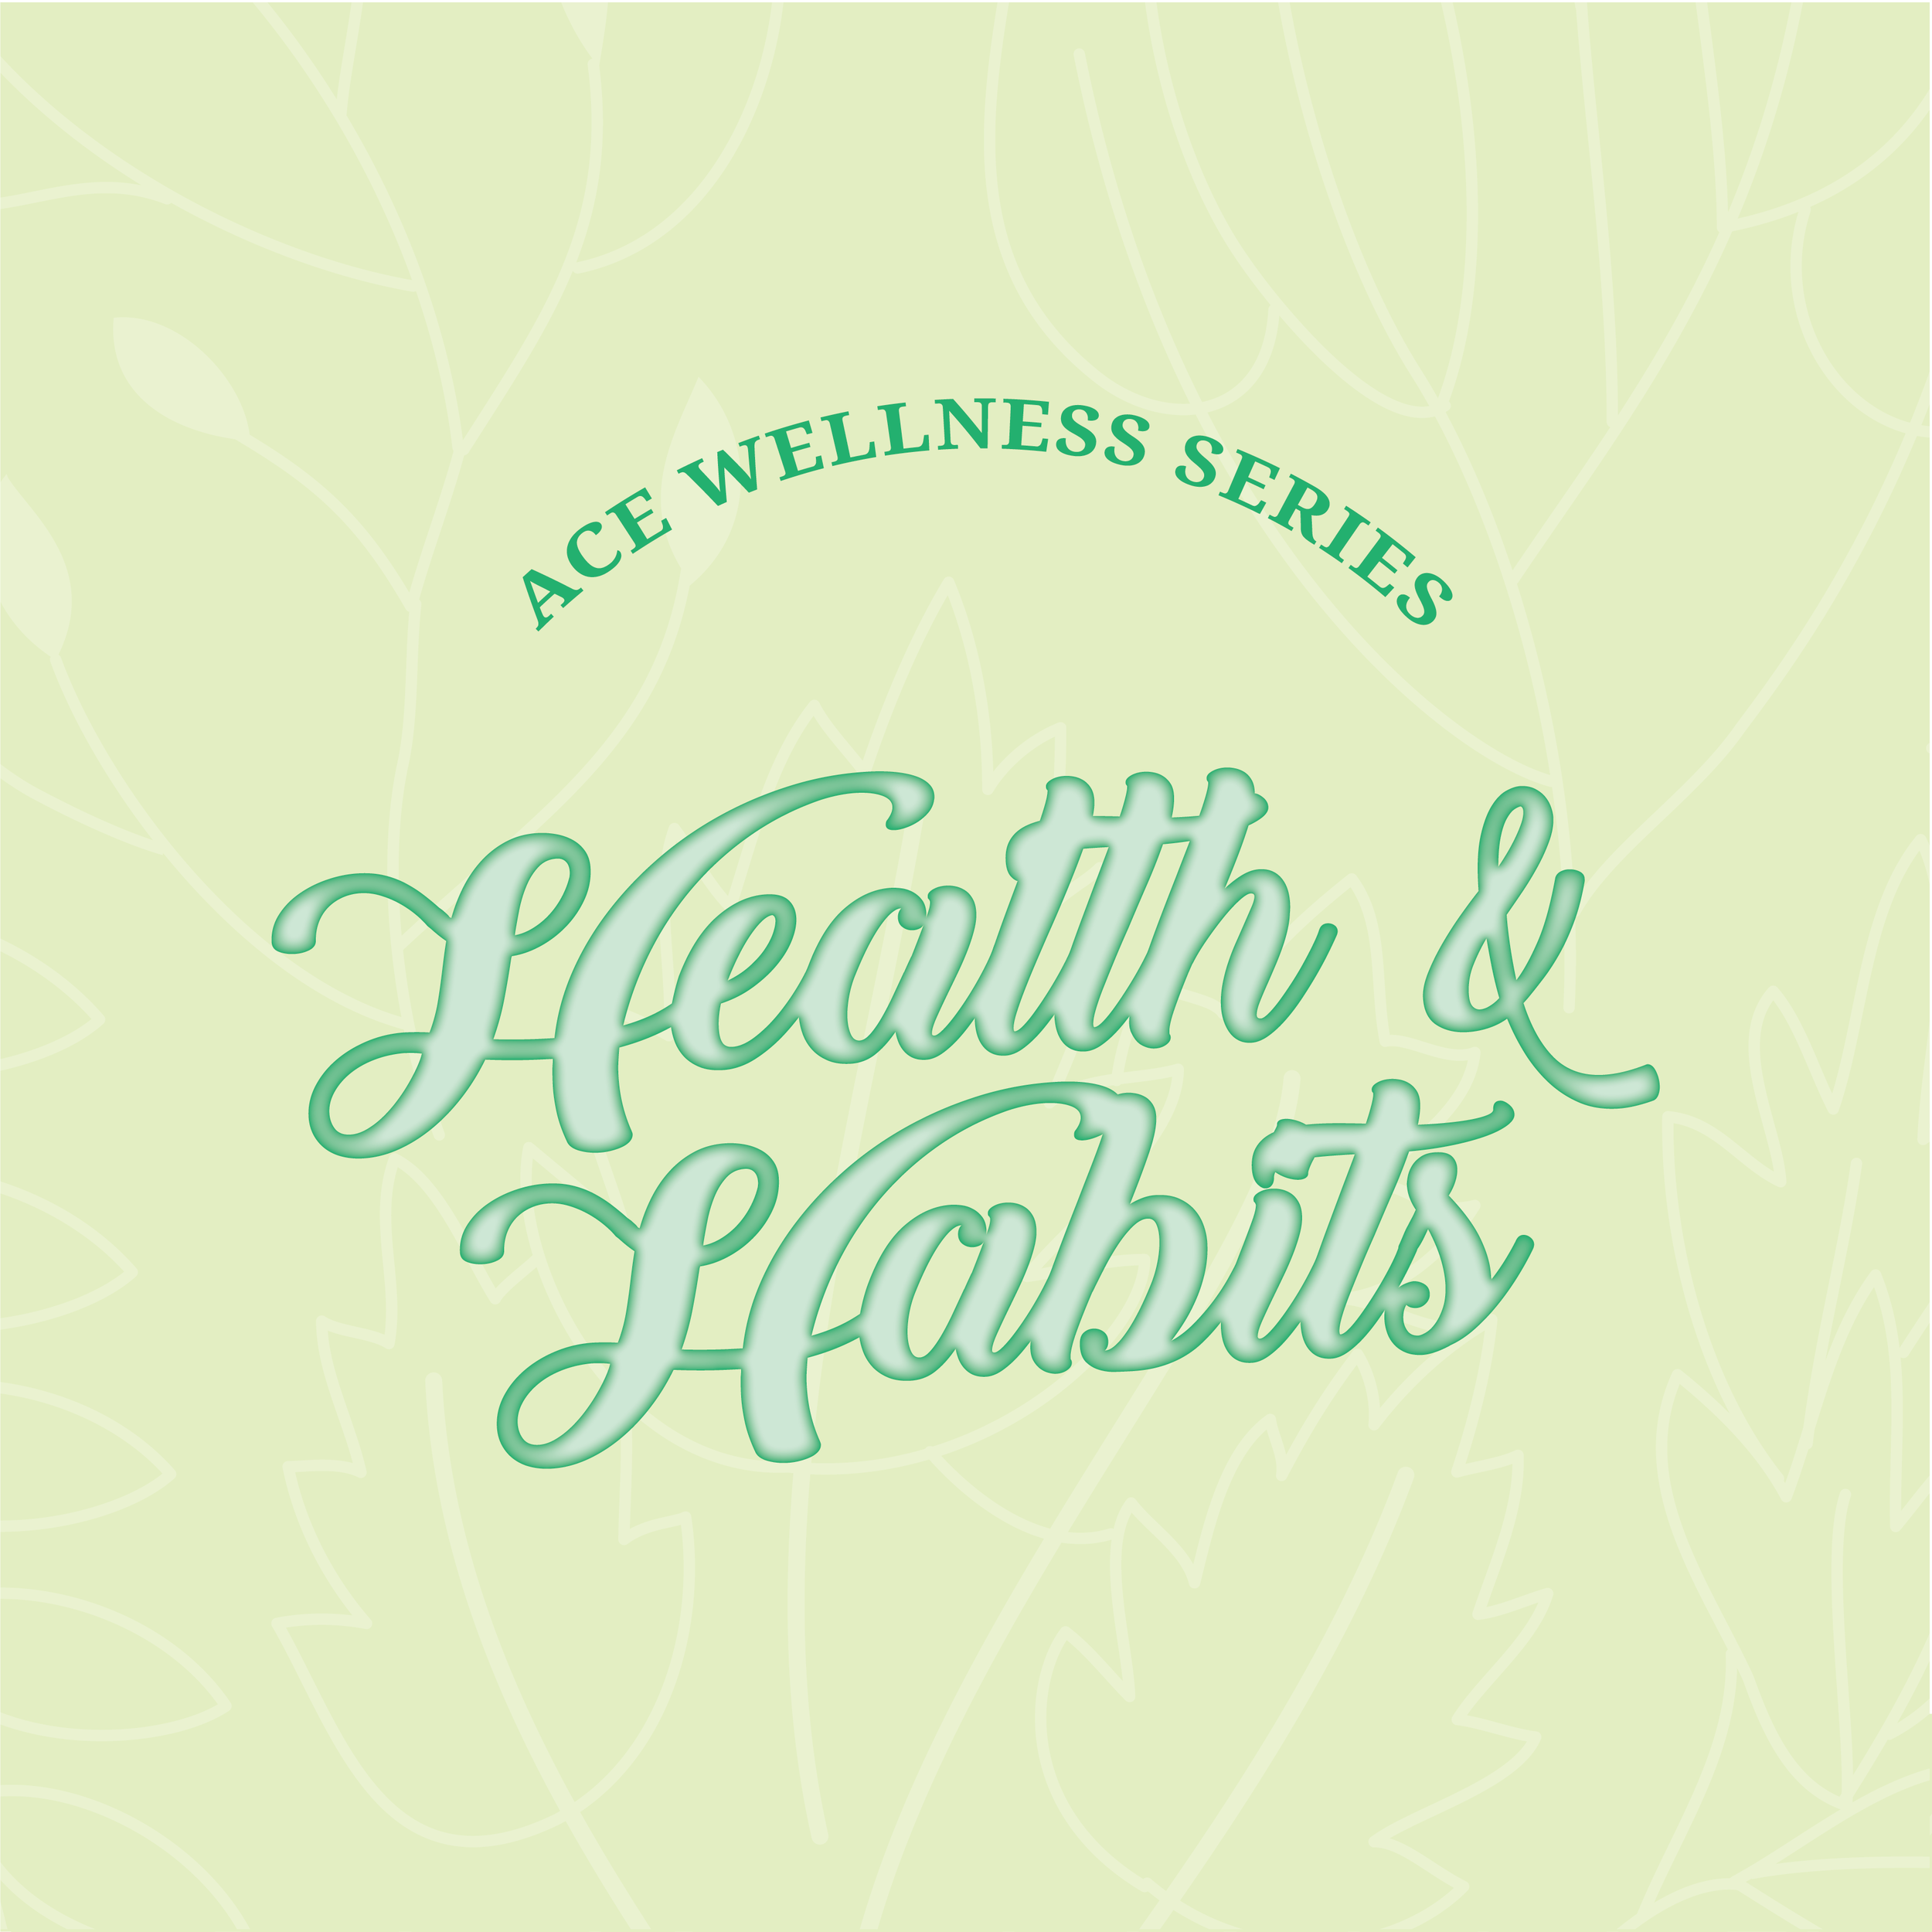 Ace_WellnessSeries_2019-02.png